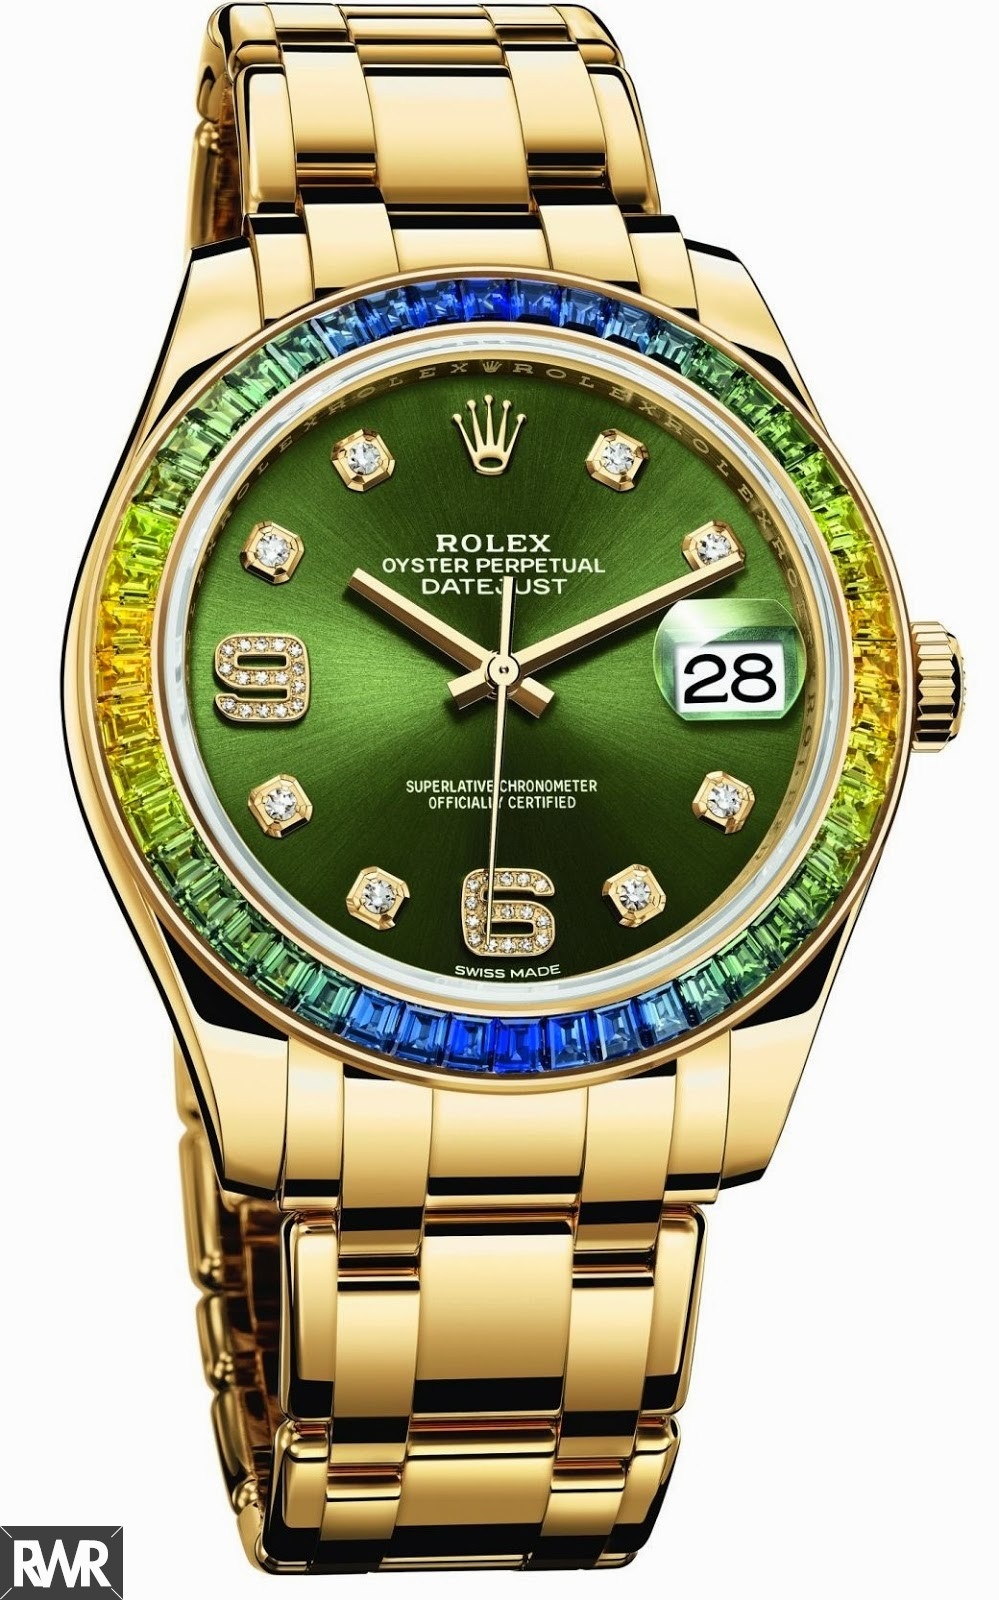 Replica Rolex Oyster Perpetual Datejust Pearlmaster 39 86348 SABLV-42748